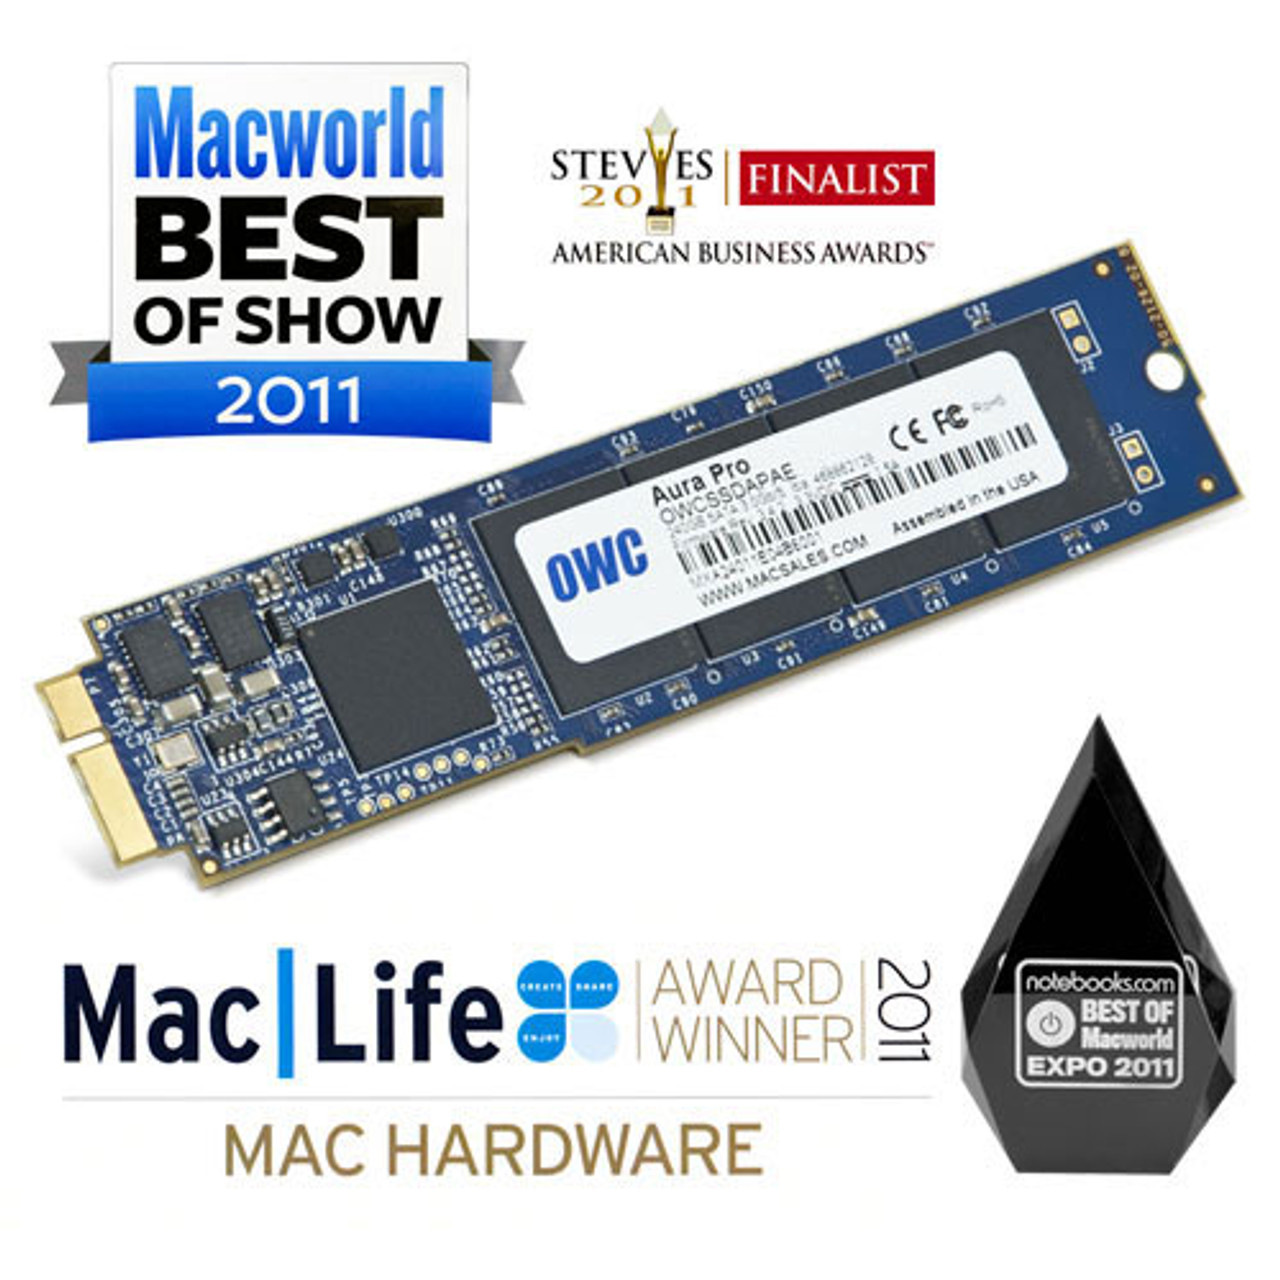 OWC 500GB Aura Pro 6G Solid State Drive with upgrade kit for MacBook Air (Late 2010 - Mid 2011)